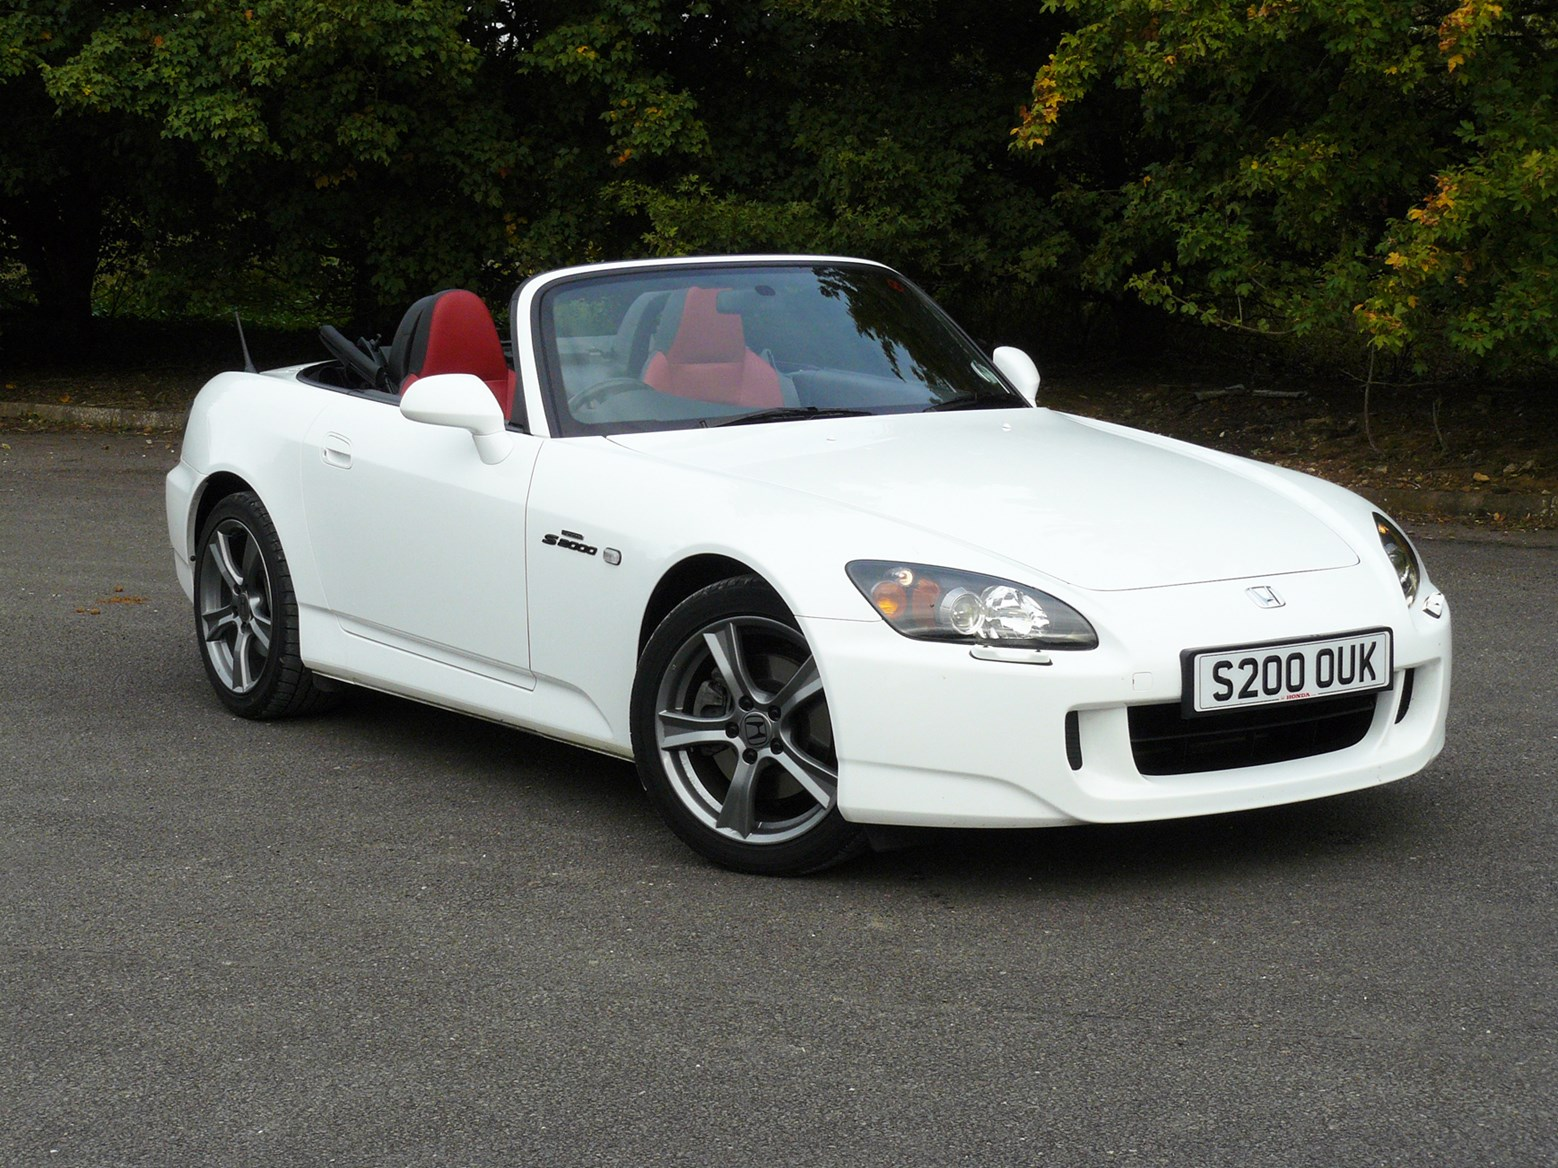 2009 honda s2000 review autos post. Black Bedroom Furniture Sets. Home Design Ideas